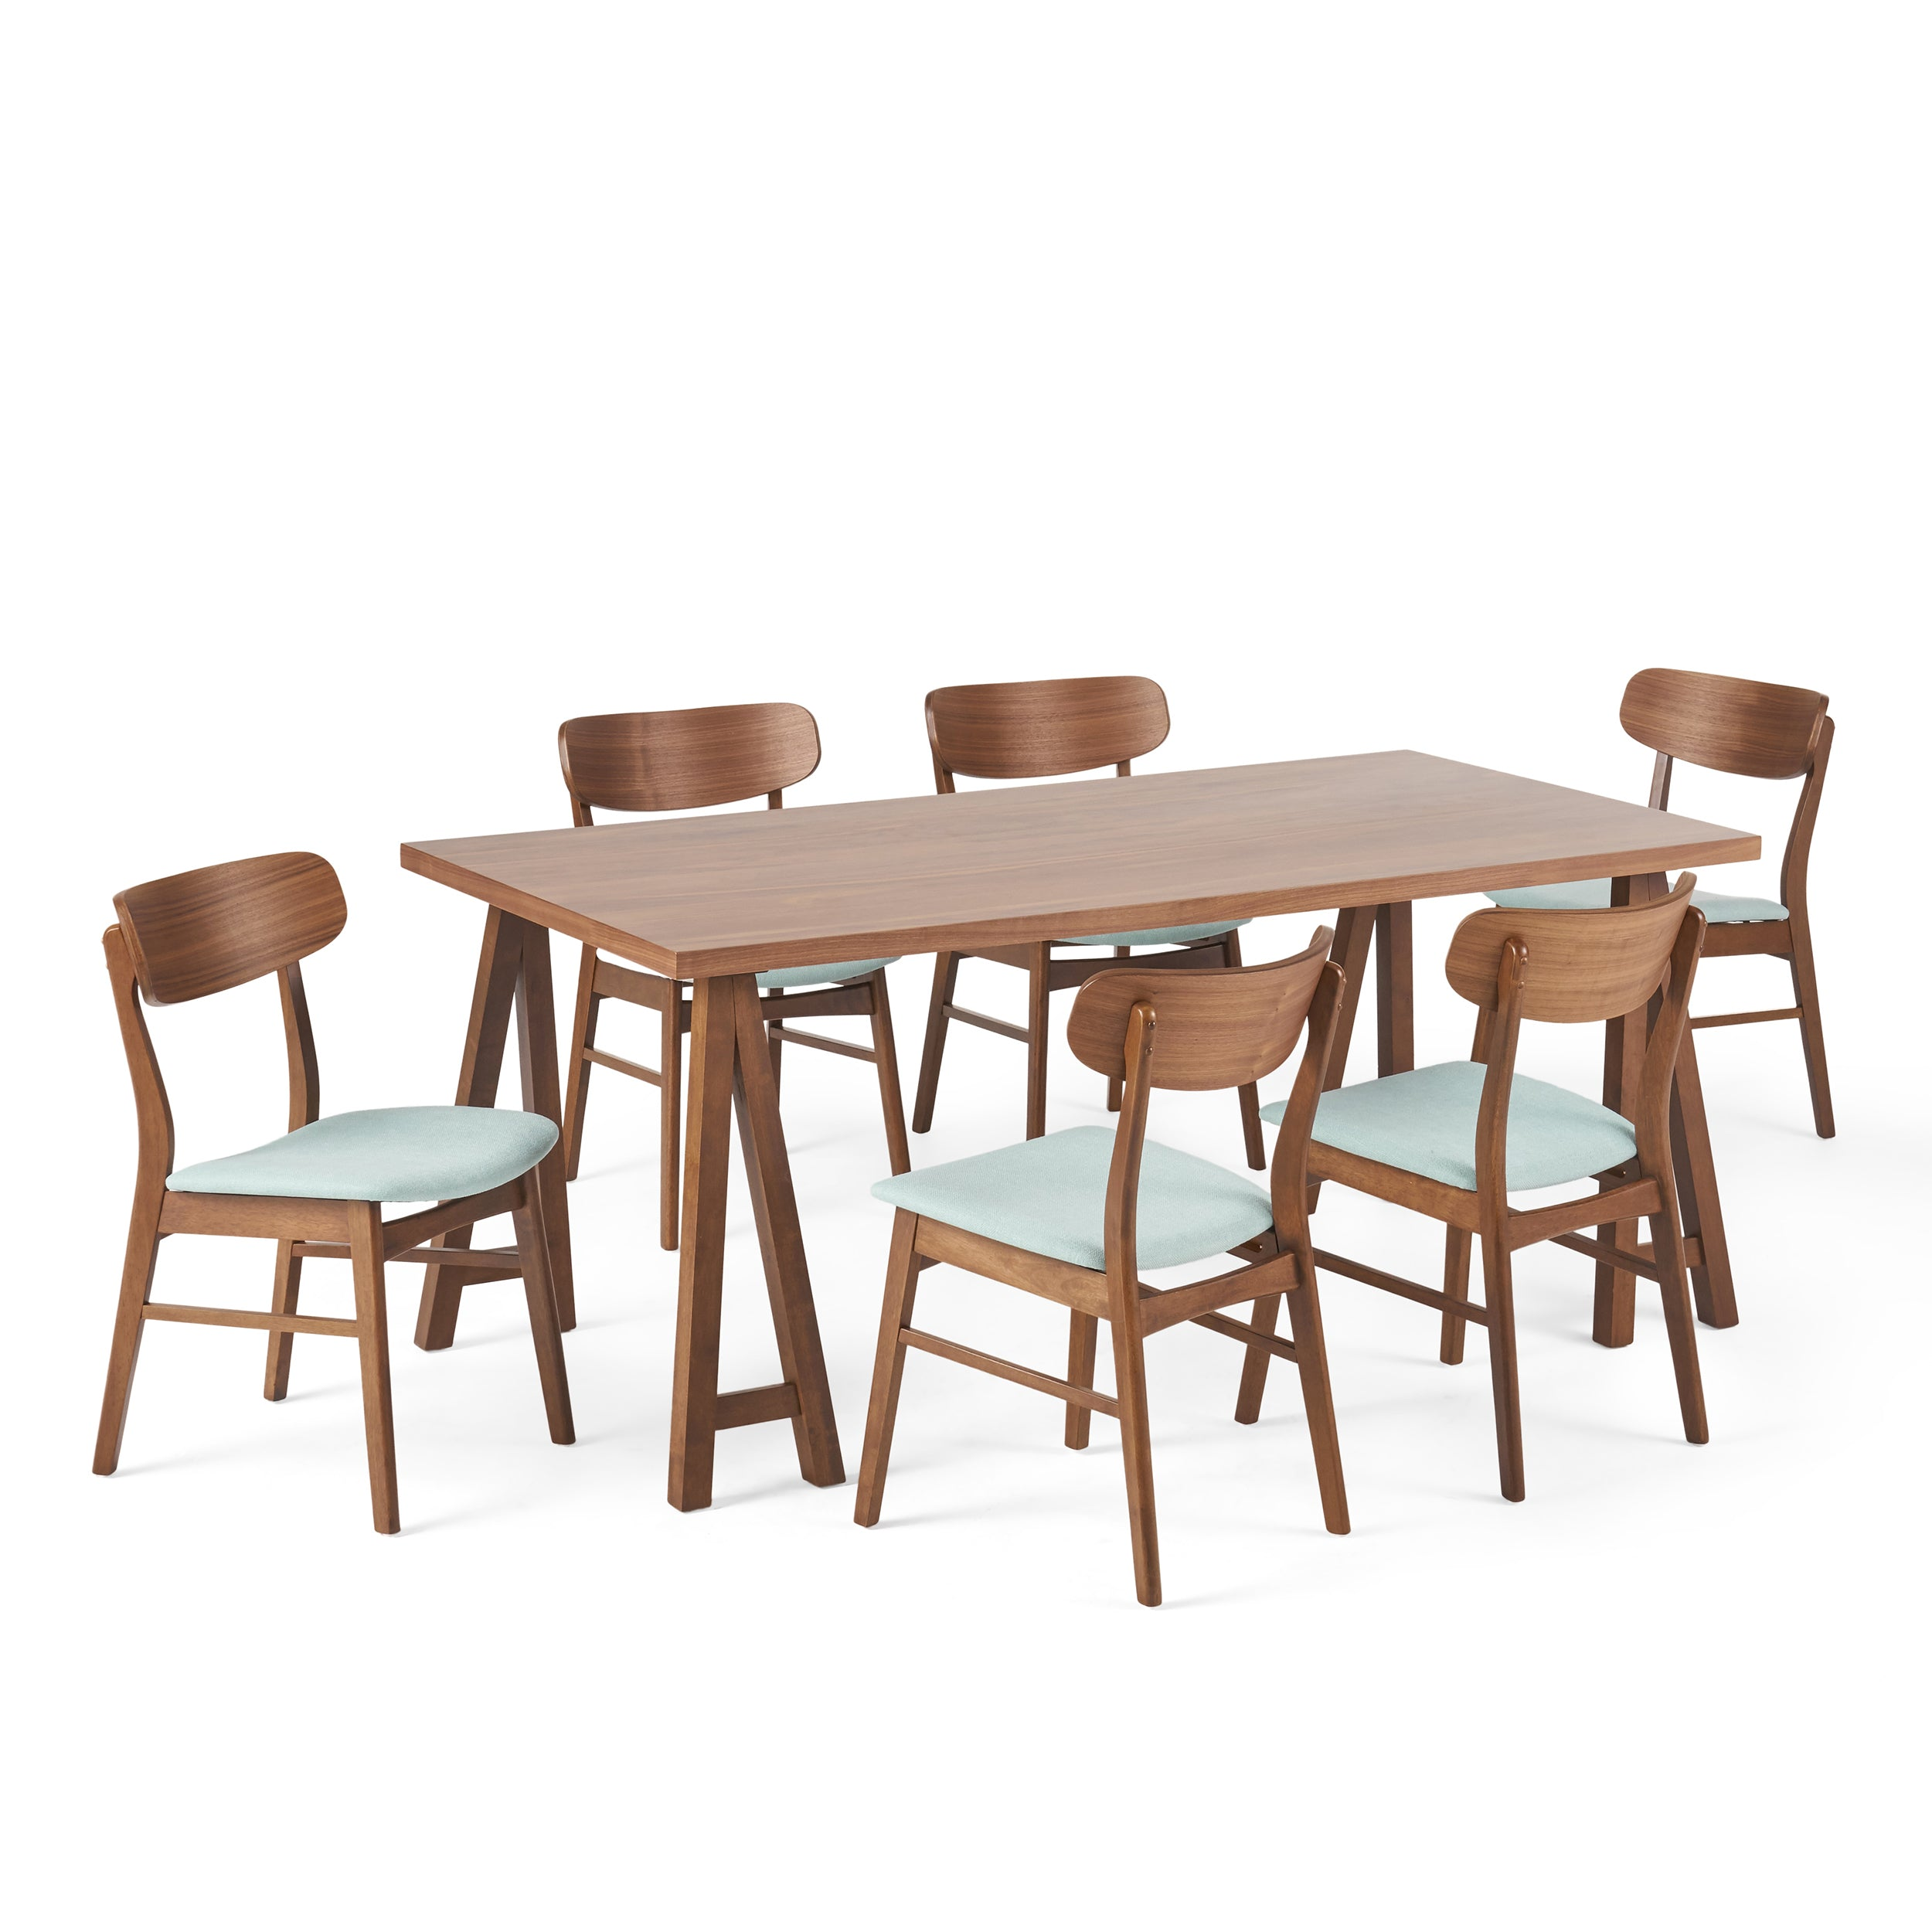 Alexis Mid Century Modern 7 Piece Dining Set with A Frame Table Green TeaNatural Oak